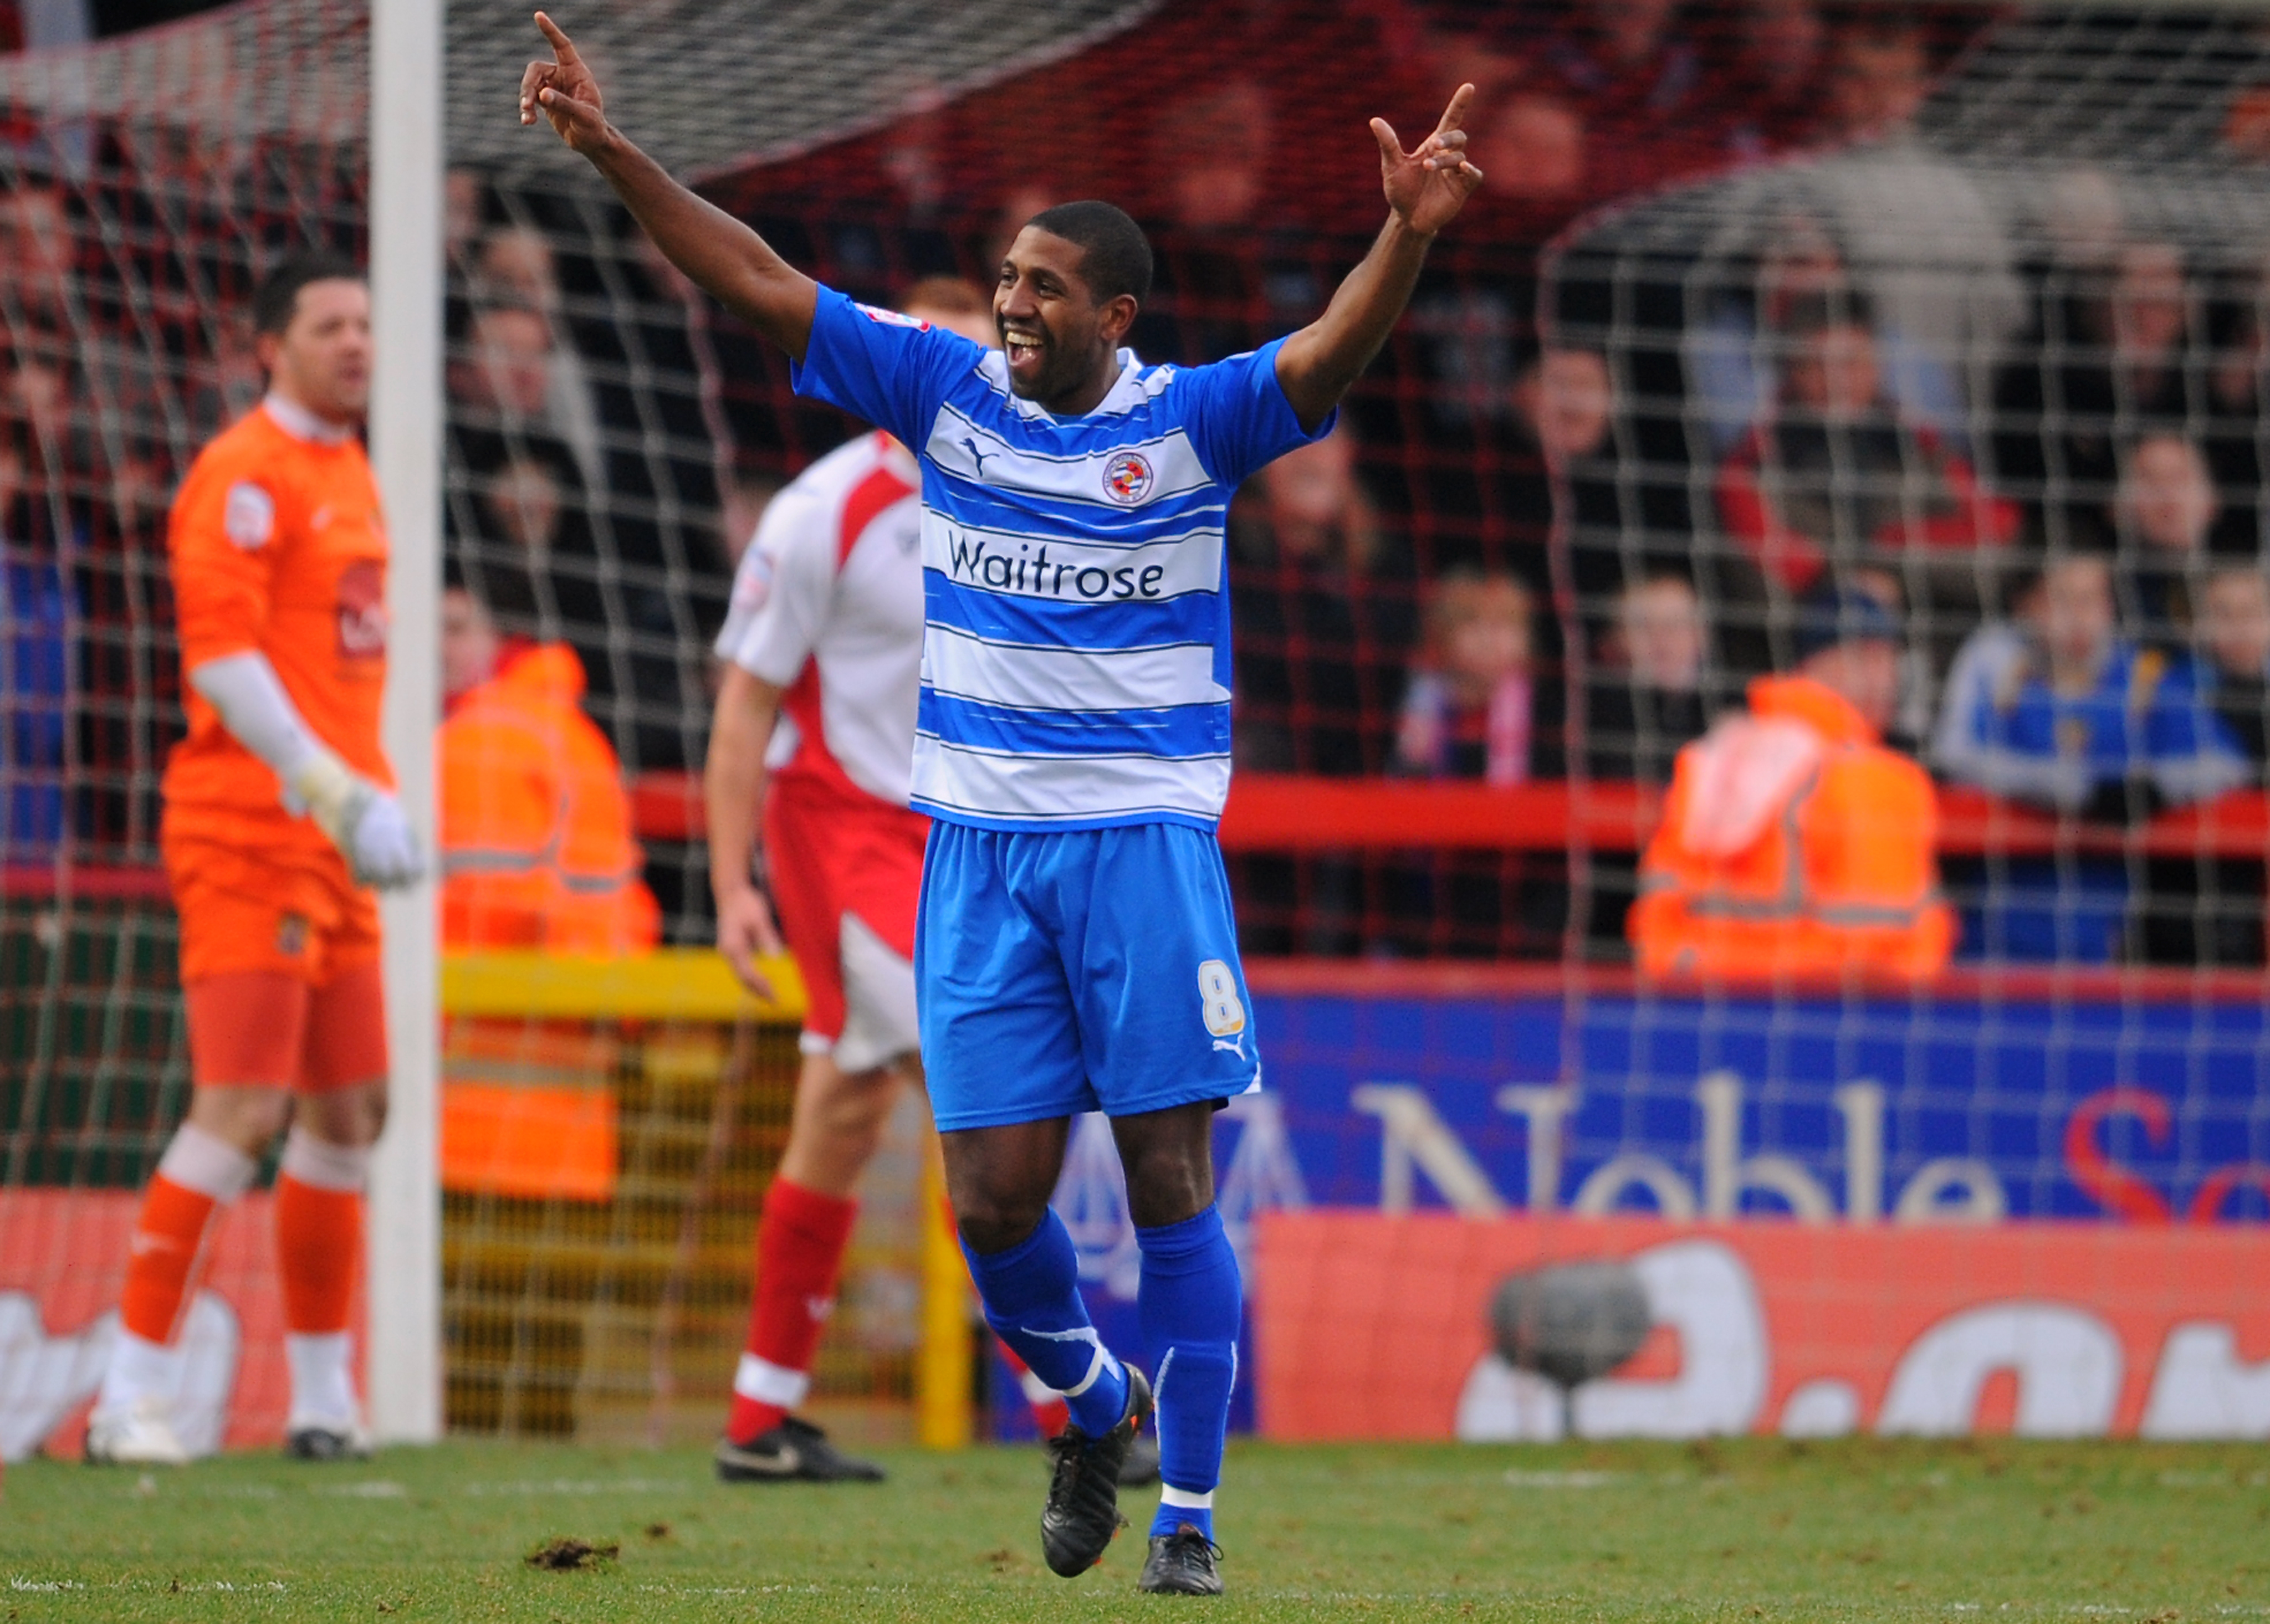 Soccer - FA Cup - Fourth Round - Stevenage v Reading - Broadhall Way